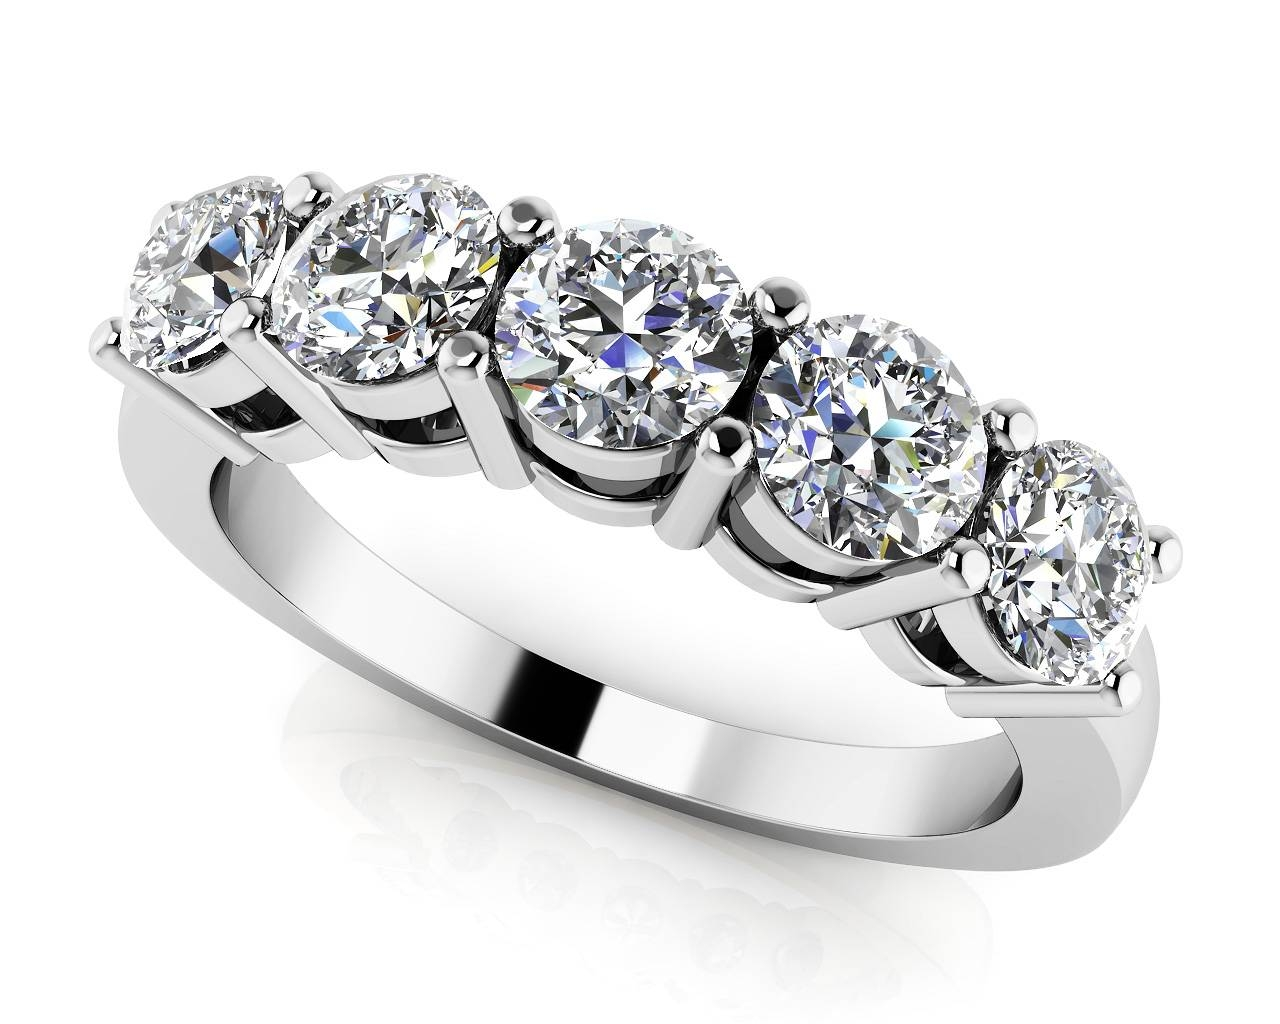 Design Your Own Diamond Anniversary Ring & Eternity Ring In Most Recent Diamonds Wedding Anniversary Rings (View 8 of 25)